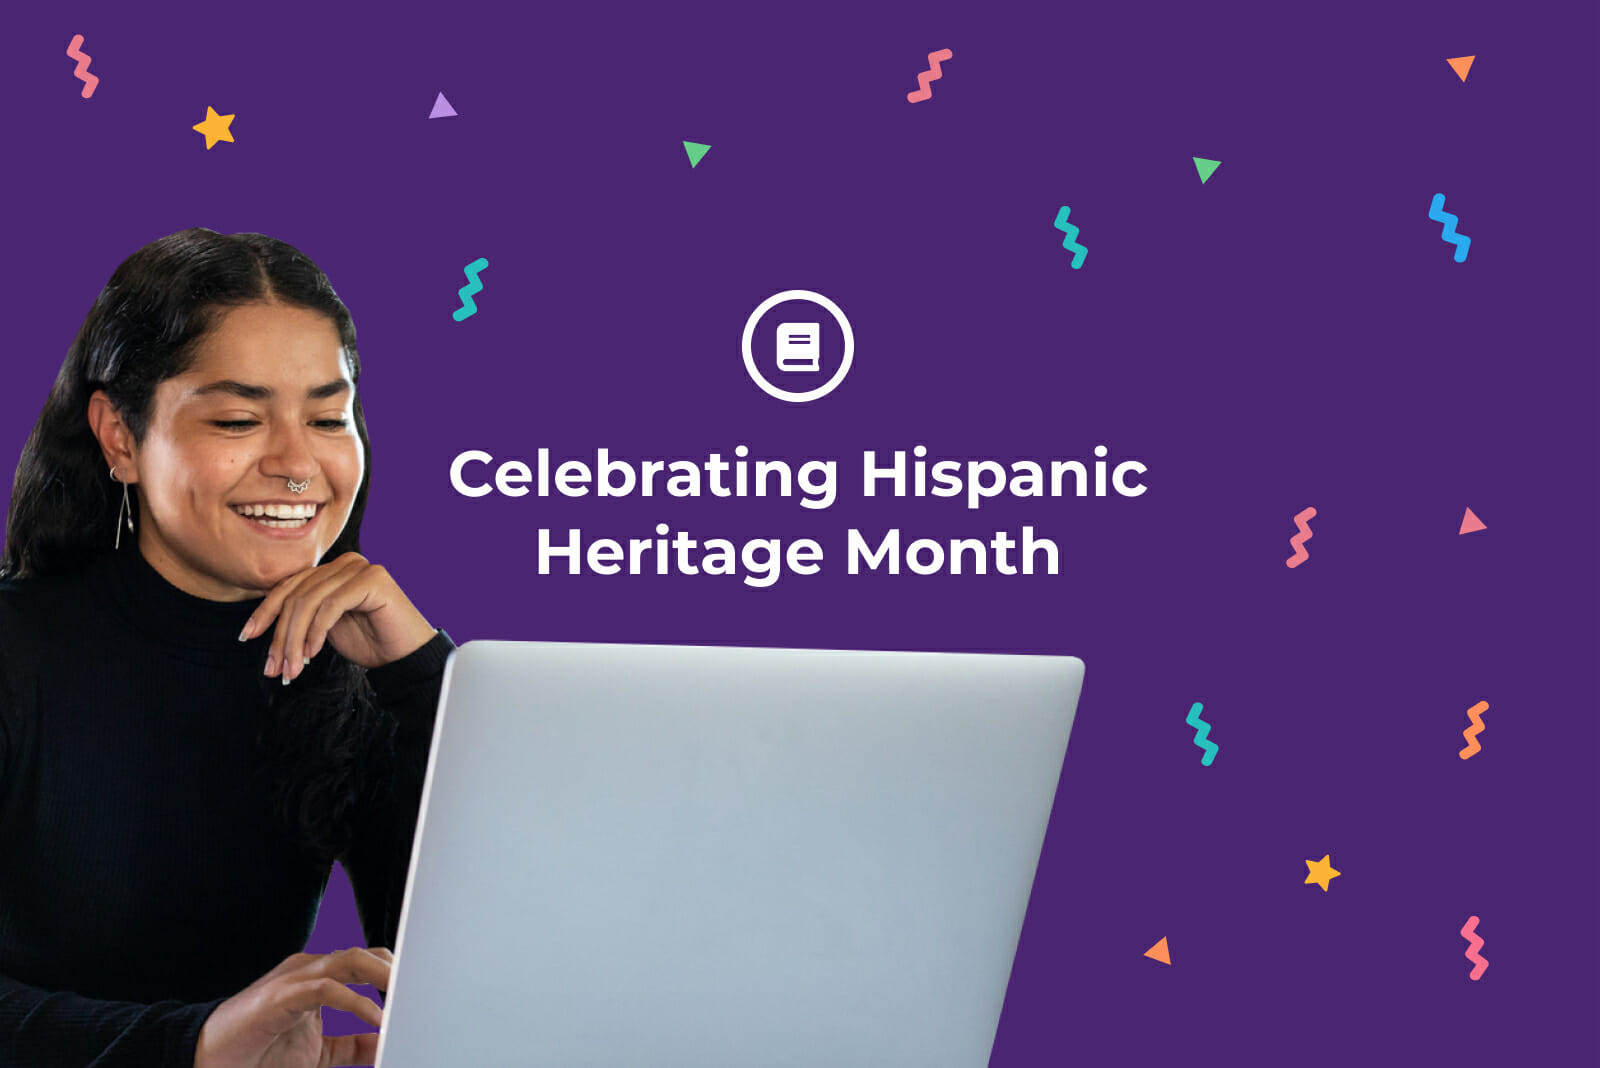 """Latinx-Hispanic woman smiling as she uses a laptop in front of a purple background that says """"Celebrating Hispanic Heritage Month:"""